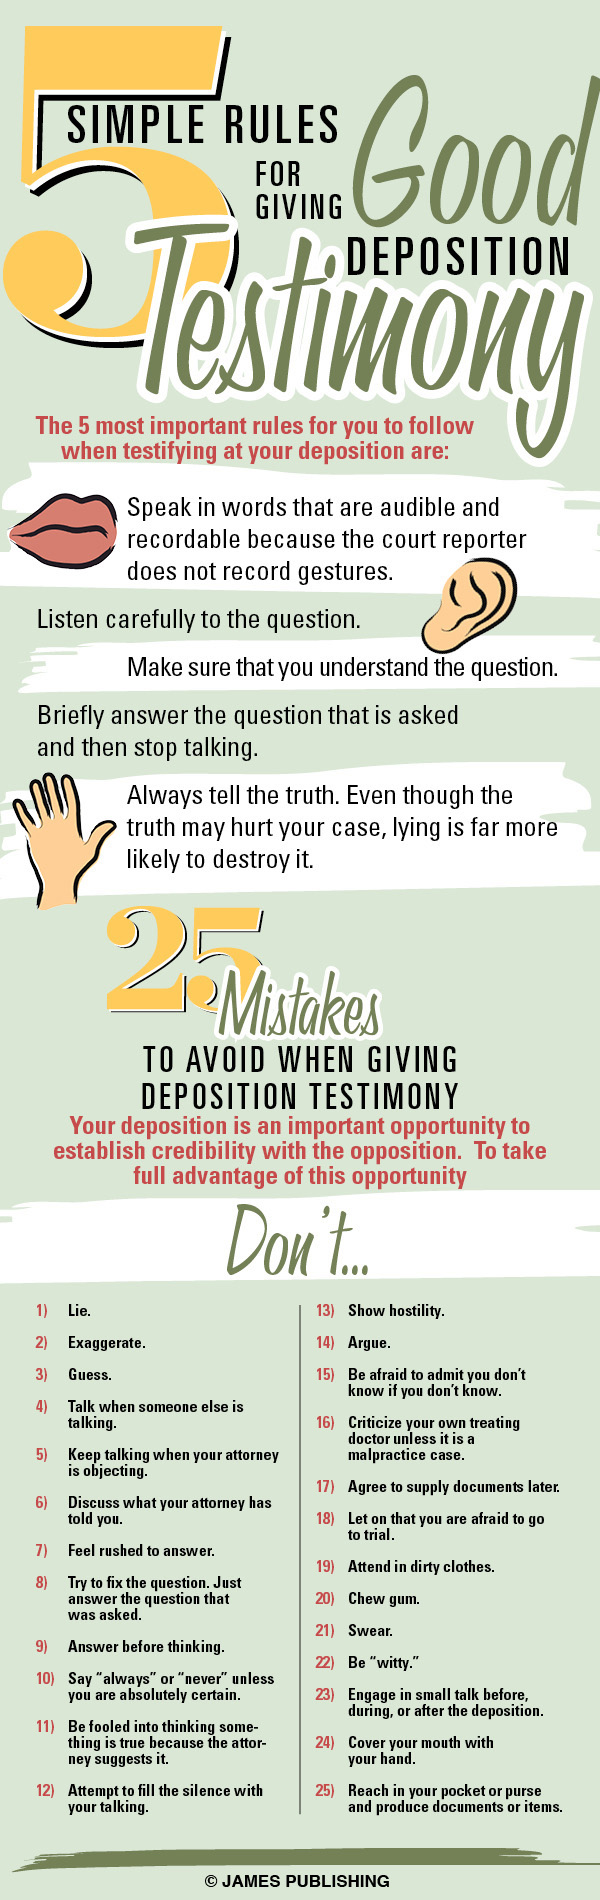 5 Rules For a Good Deposition Testimony - An Infographic from Infographics Showcase